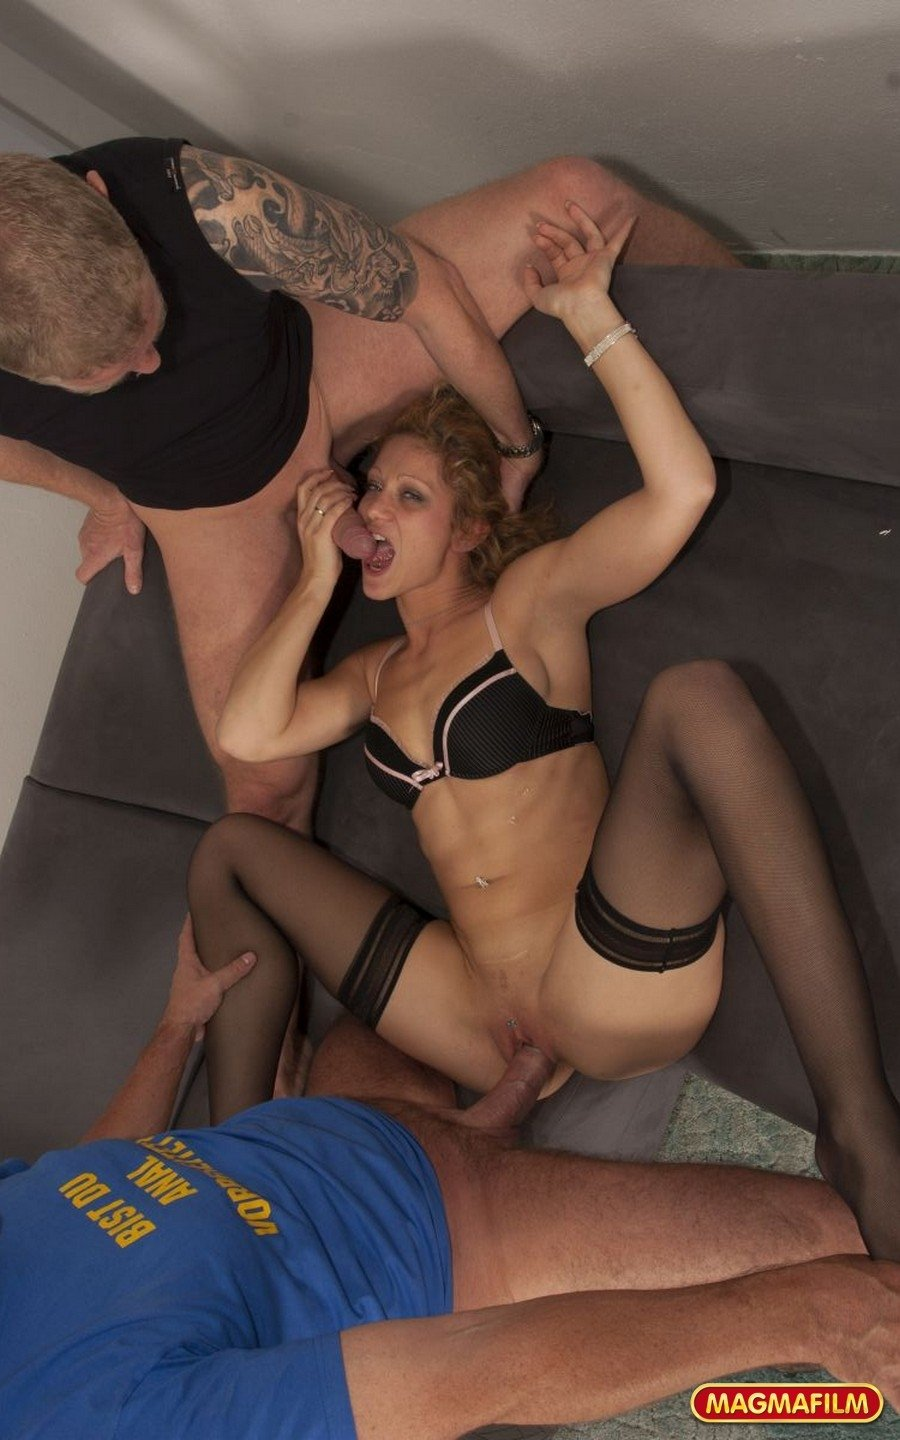 Cute young wife sucking dick while husband watches